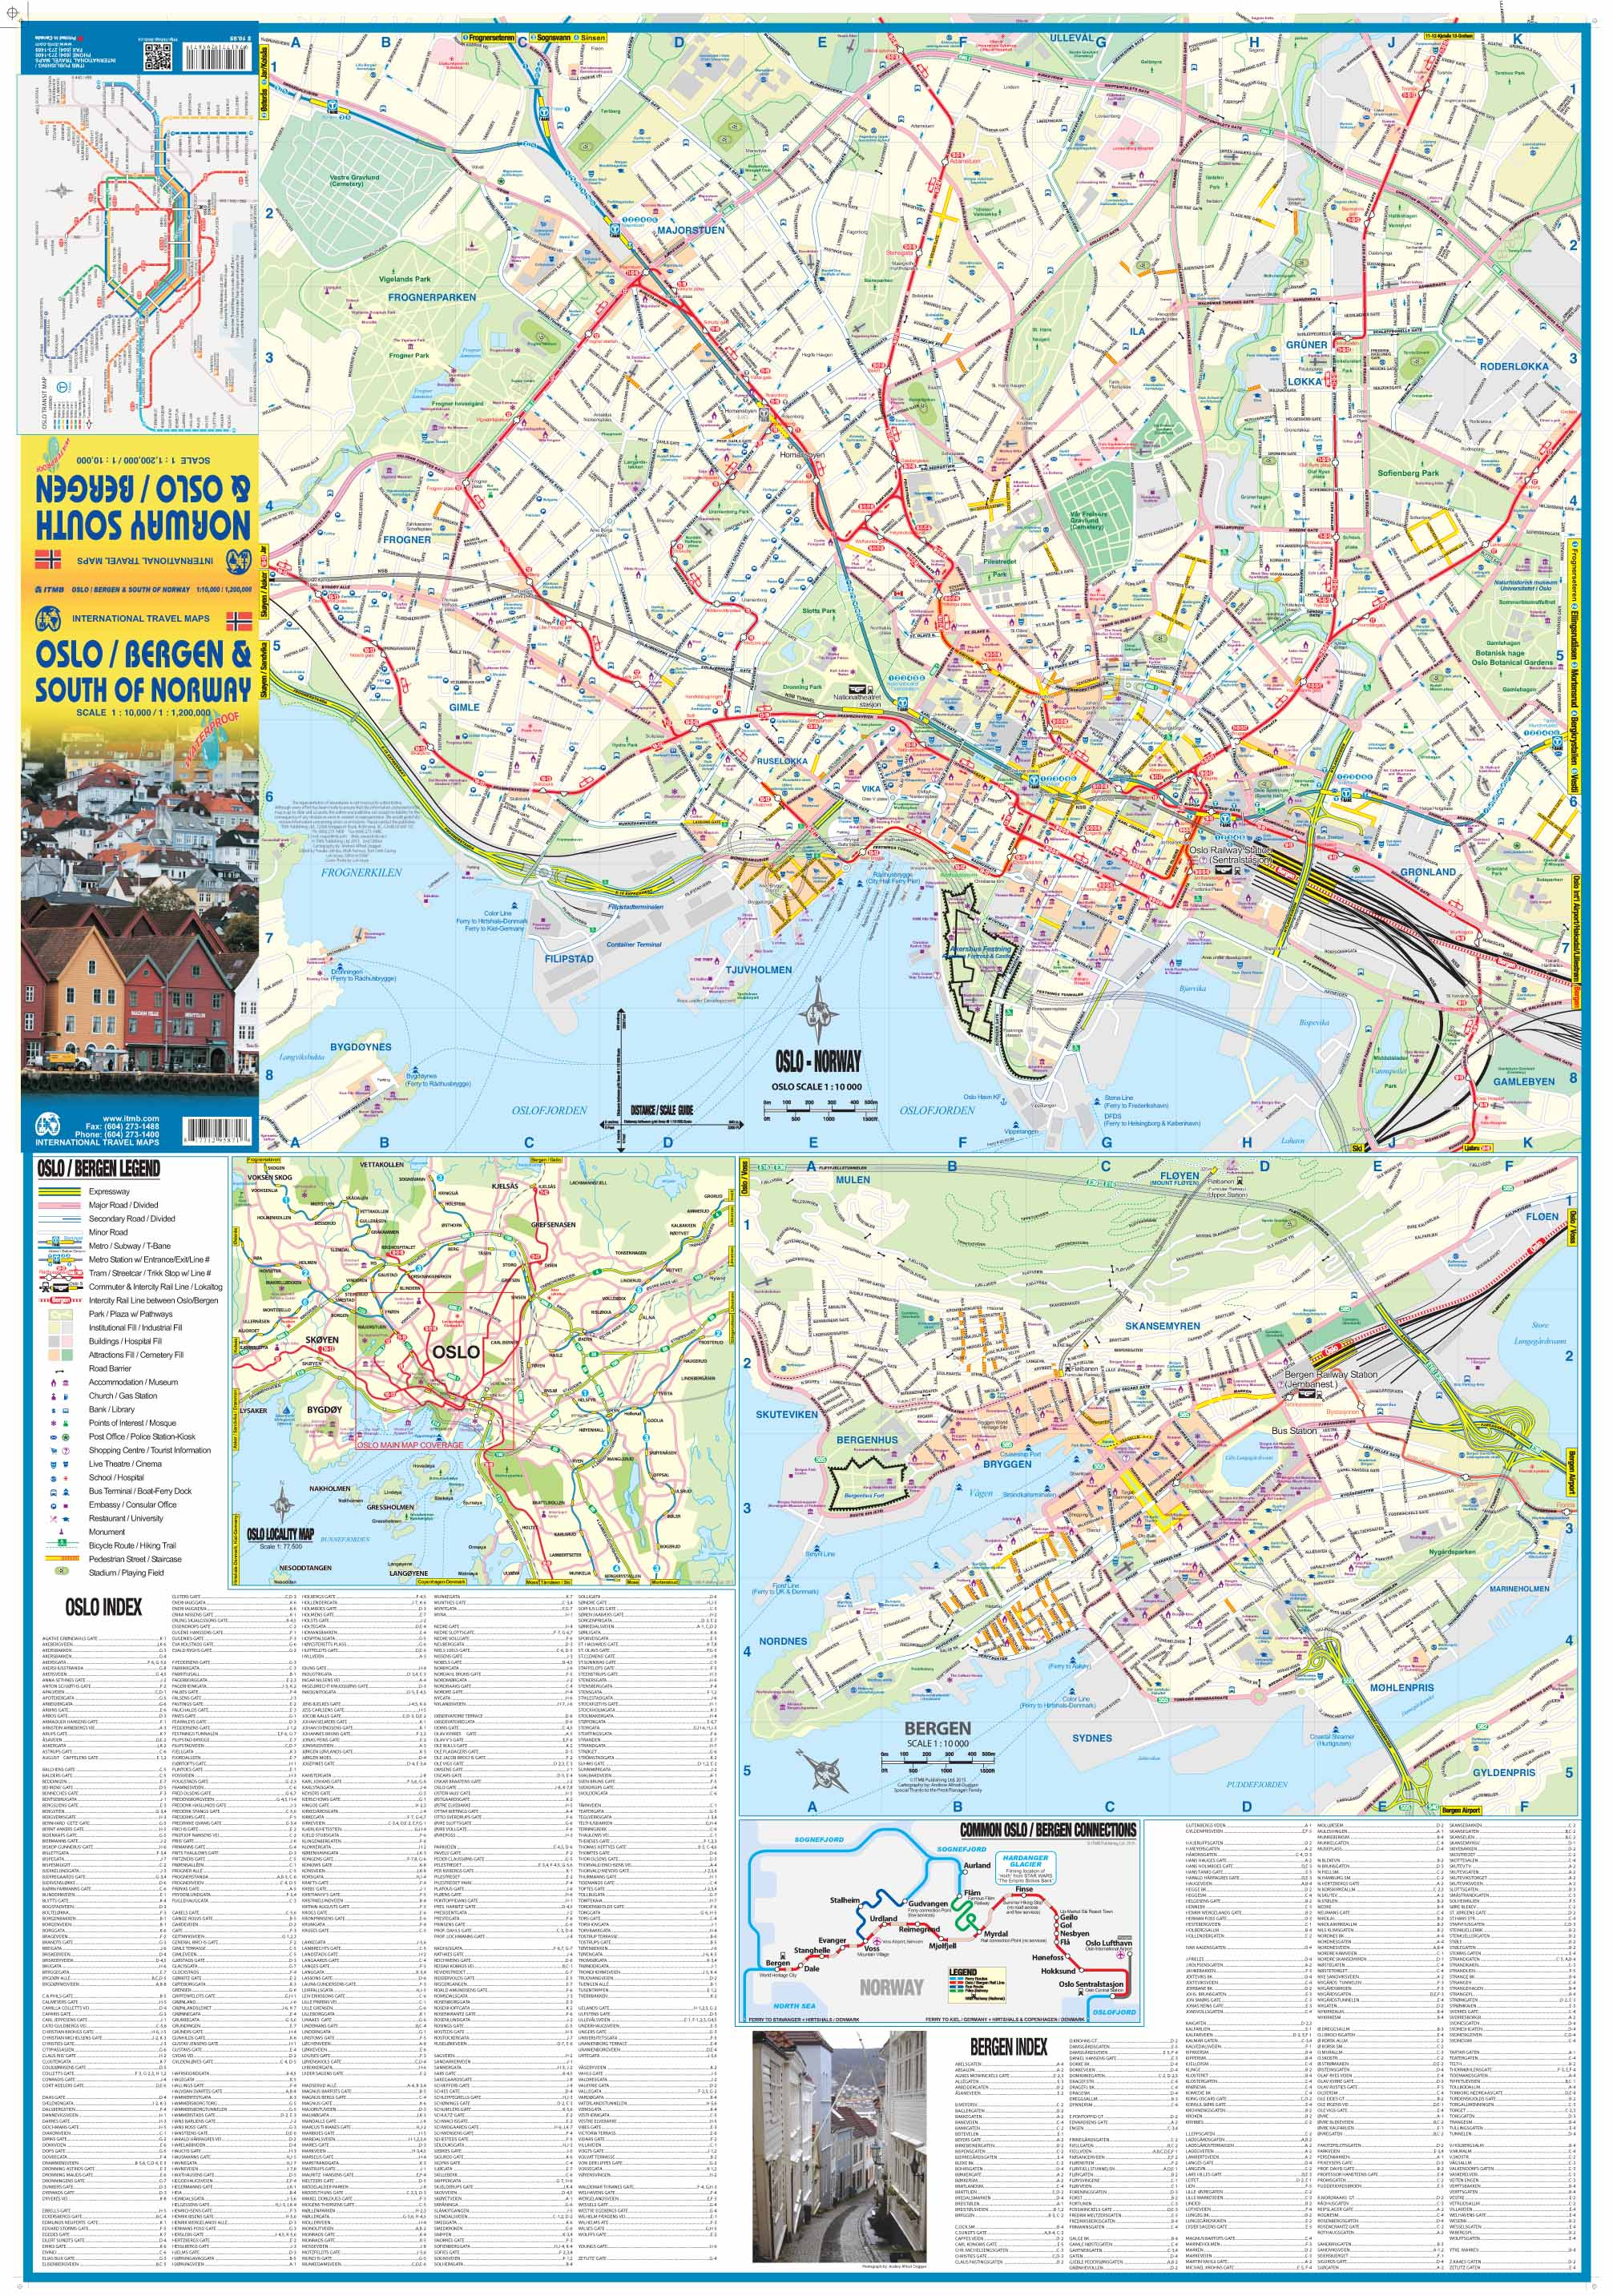 Maps for travel City Maps Road Maps Guides Globes Topographic Maps